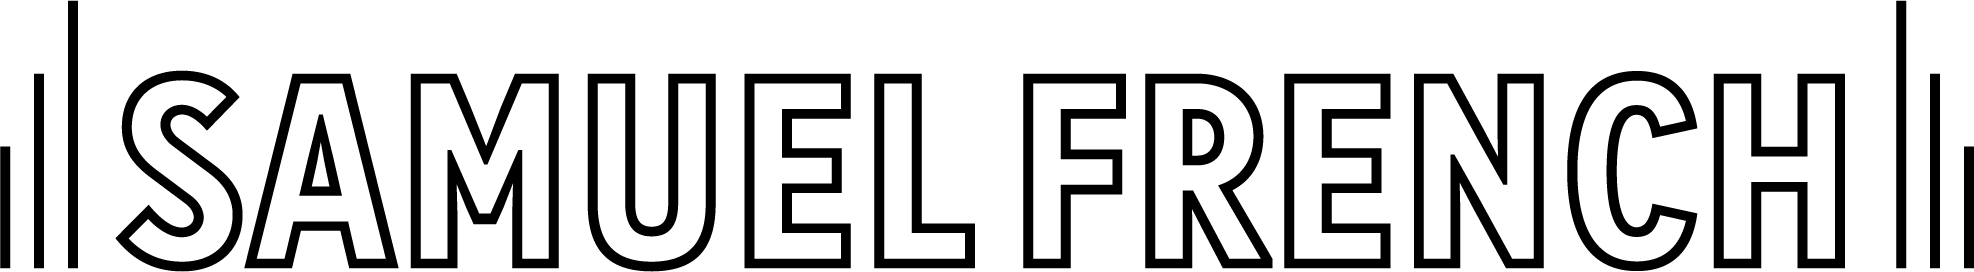 SF_BIG_Wordmark_Primary.png